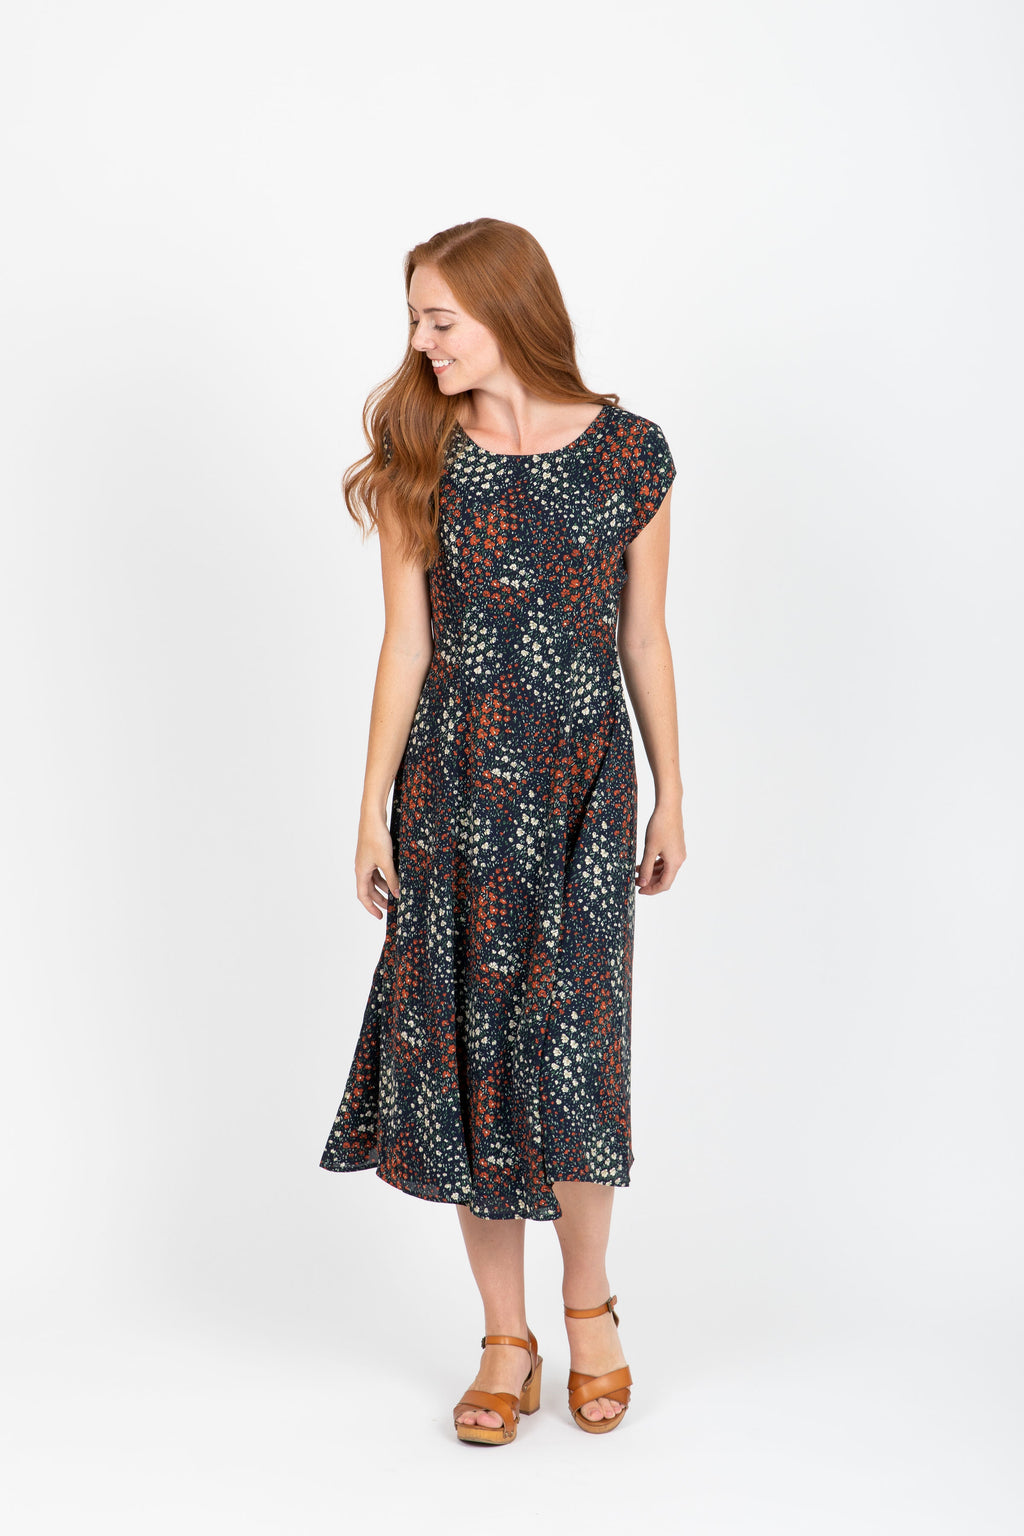 The Achiever Floral Midi Dress in Navy